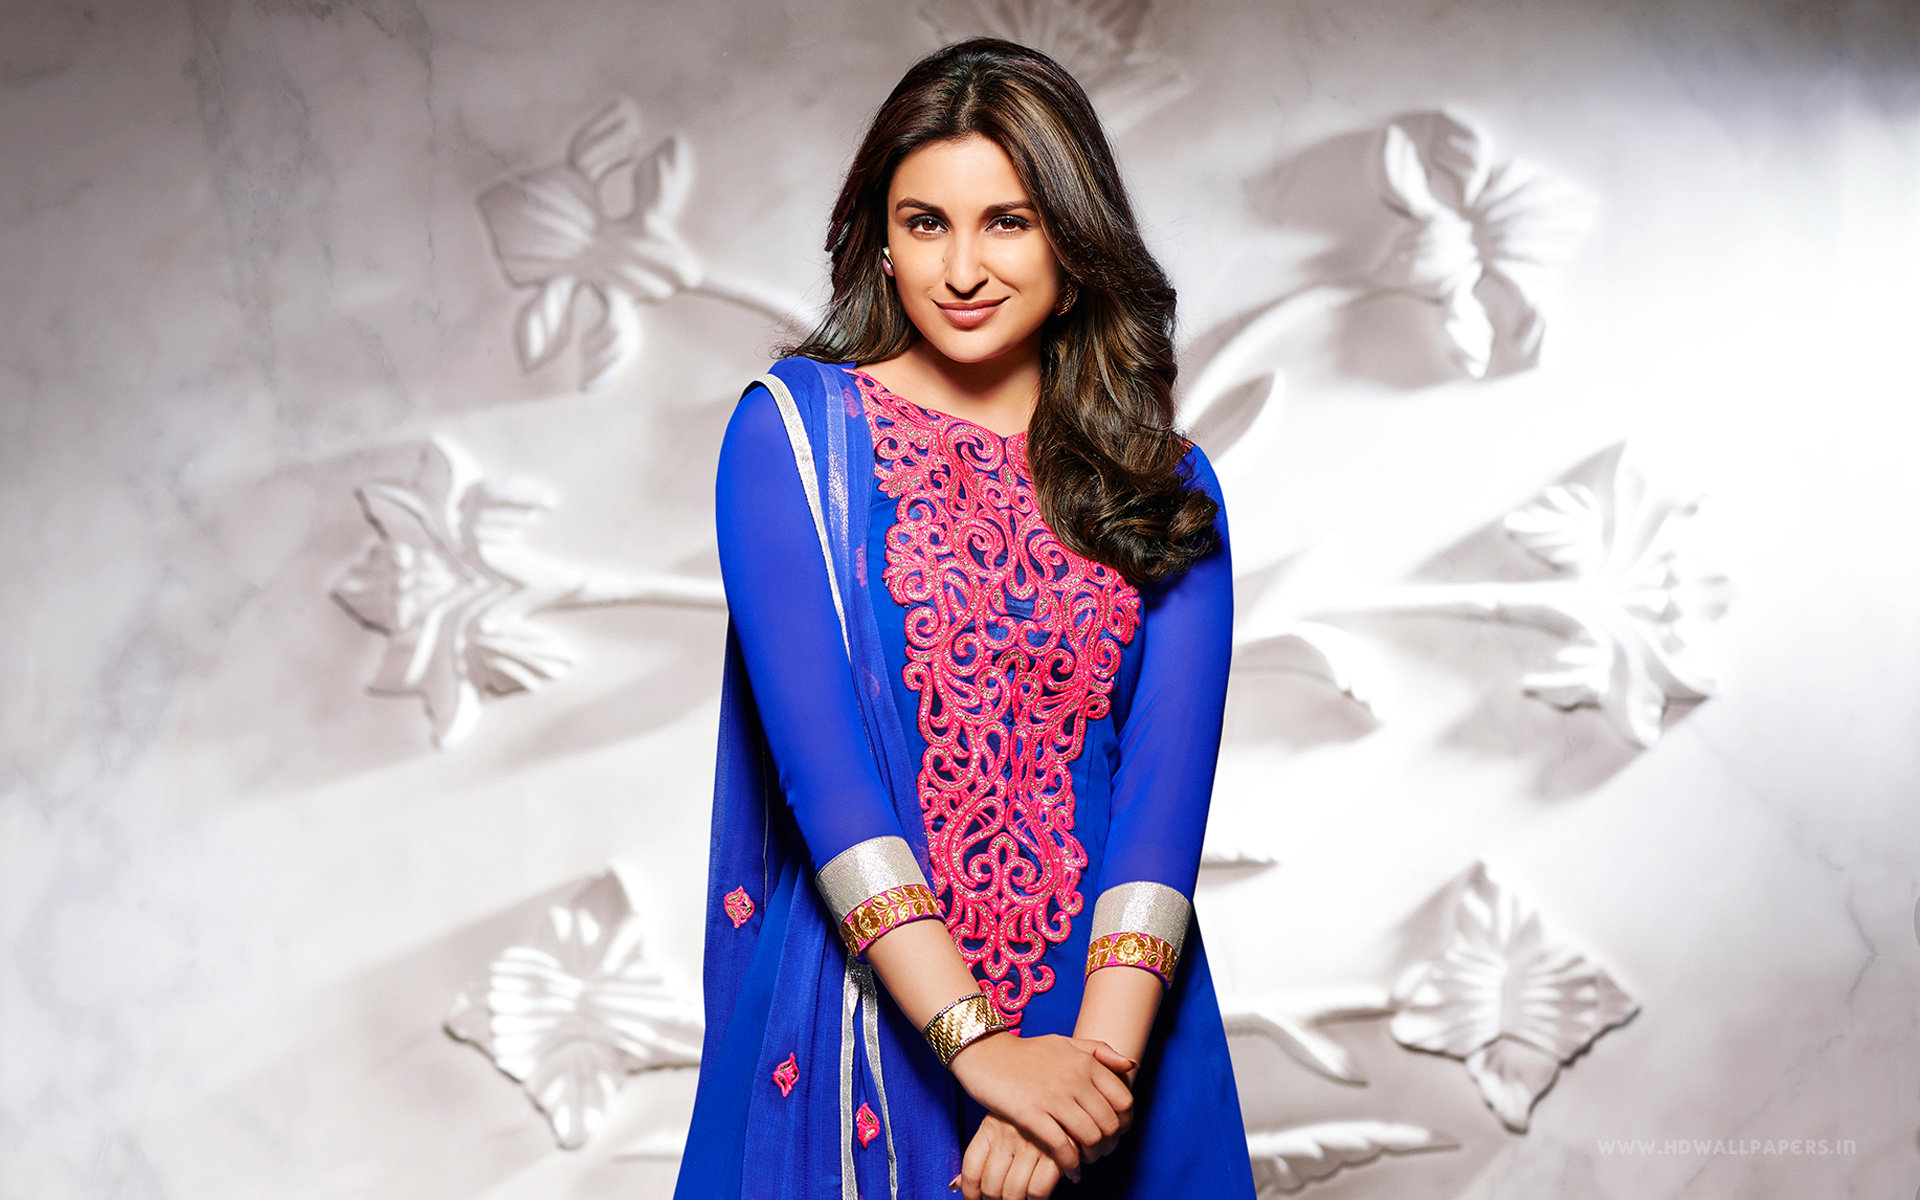 Awesome Parineeti Chopra free wallpaper ID:283850 for hd 1920x1200 desktop